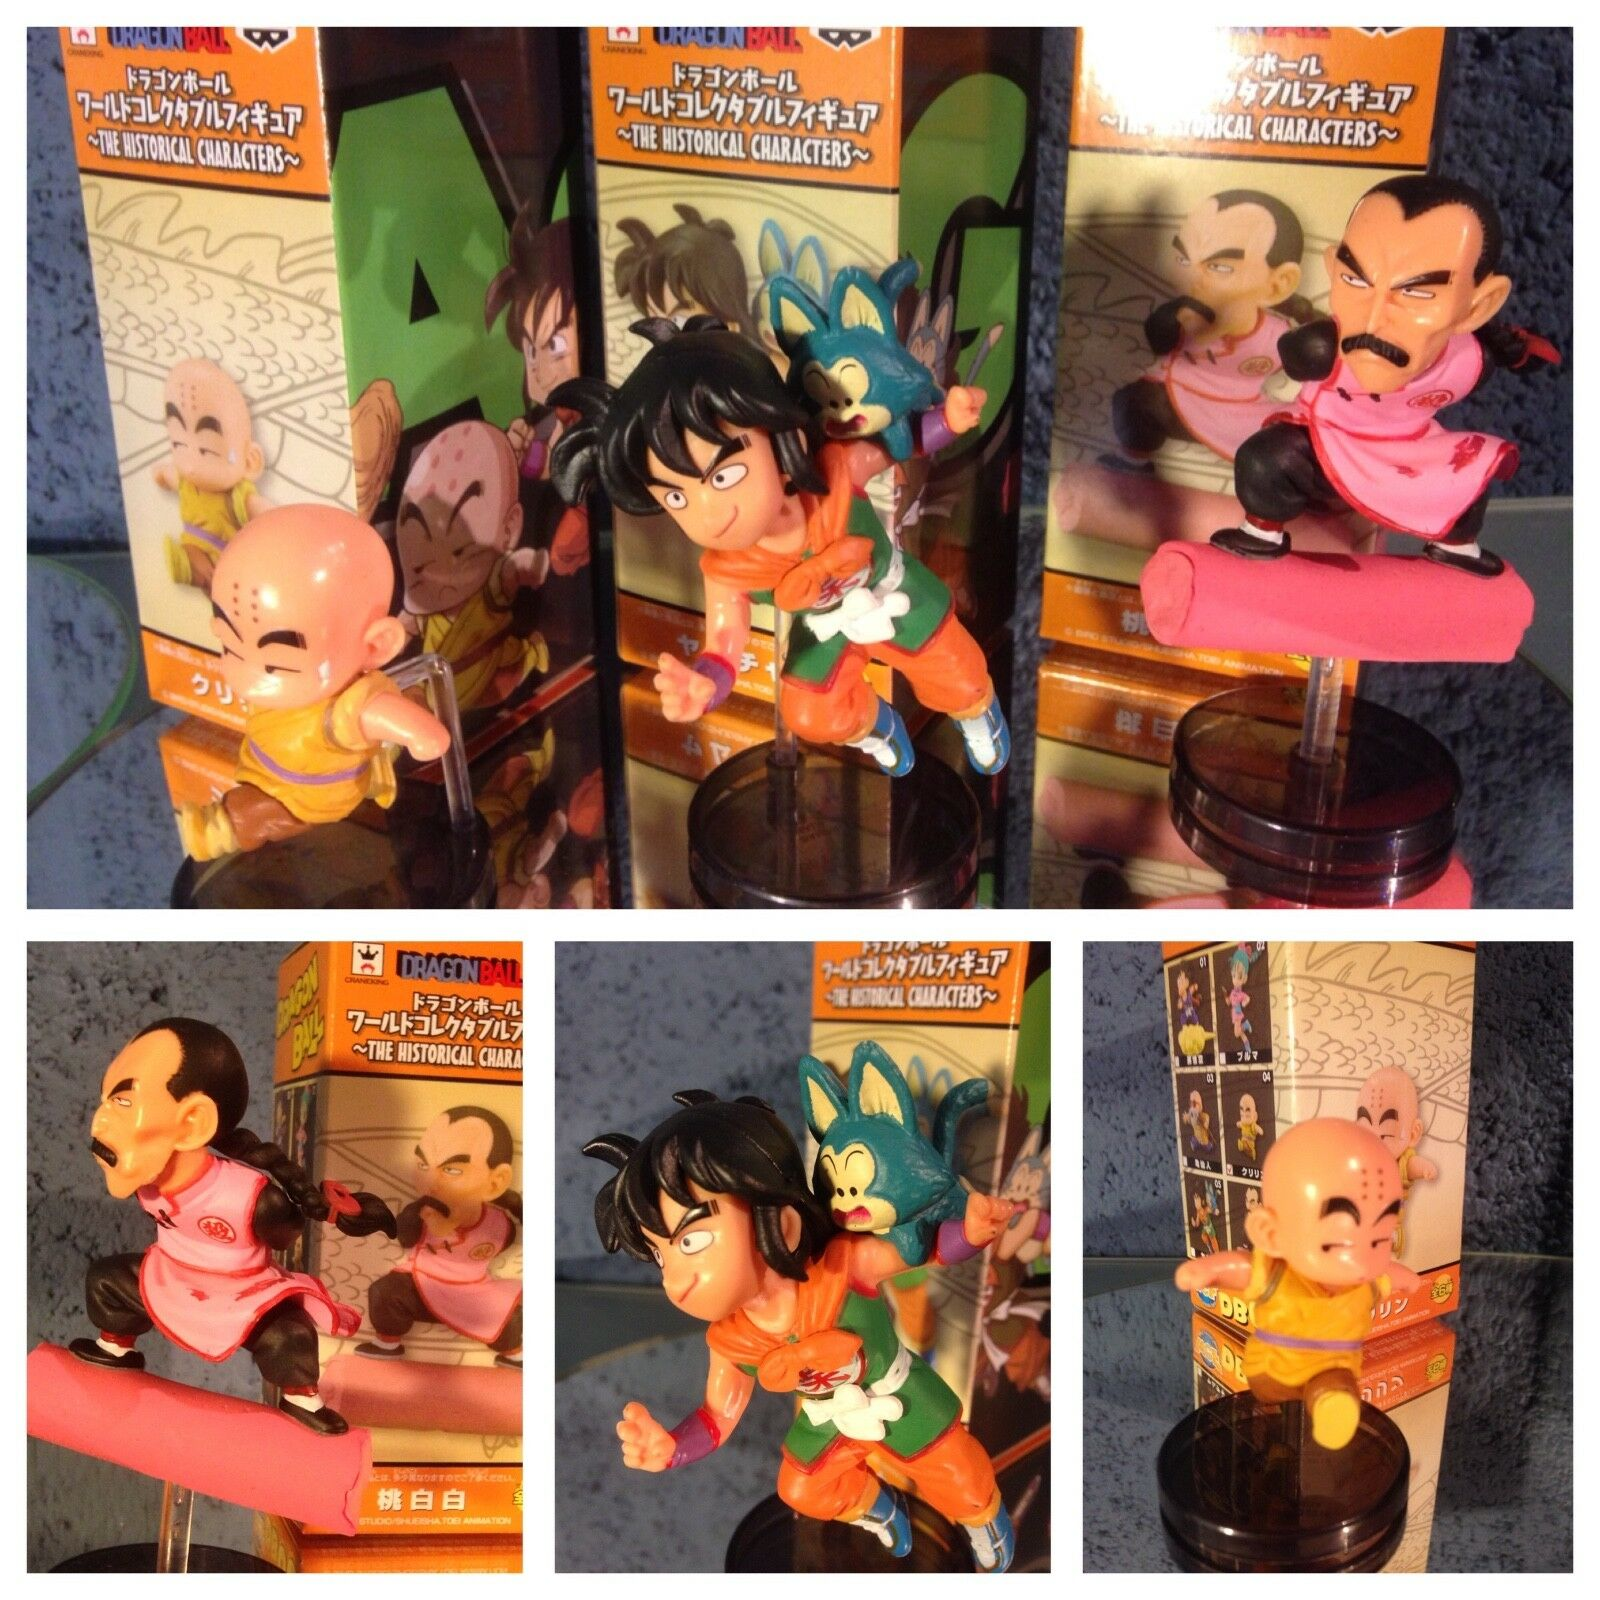 Figurine.Manga.Dragon ball. Pvc figure.collection.posing figure.